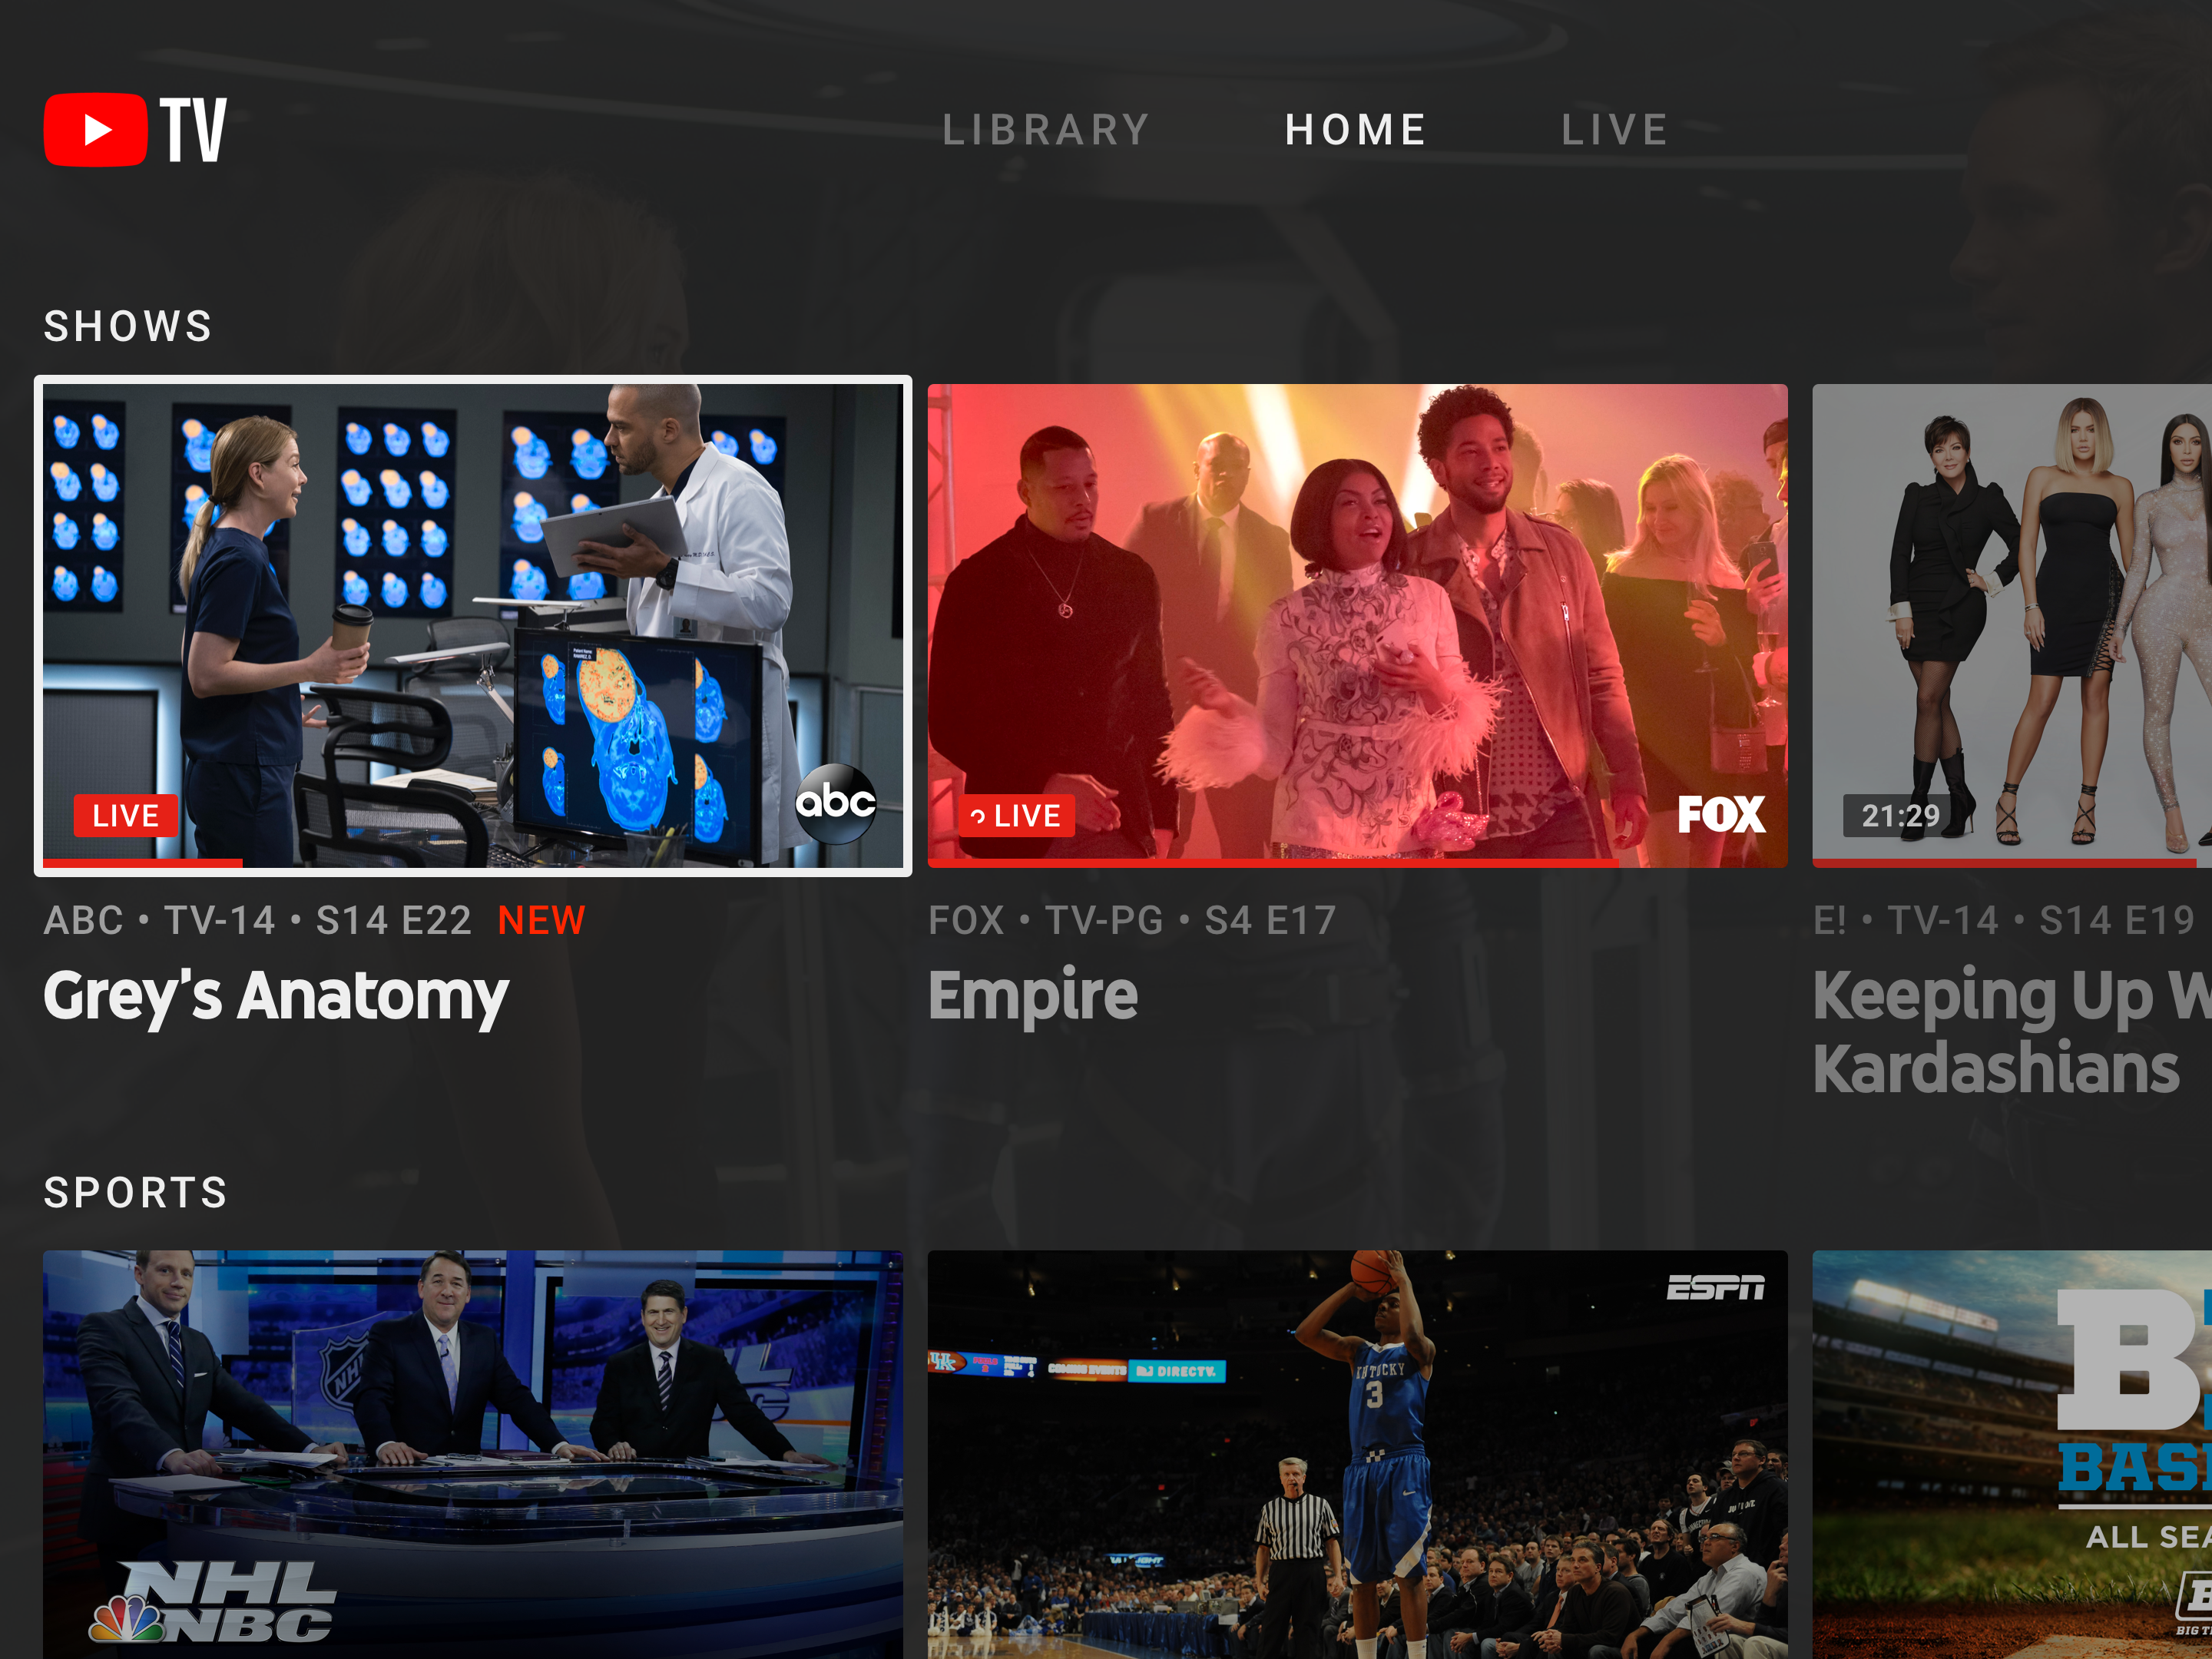 YouTube TV offers subscribers free week of service as an apology for the recent outage